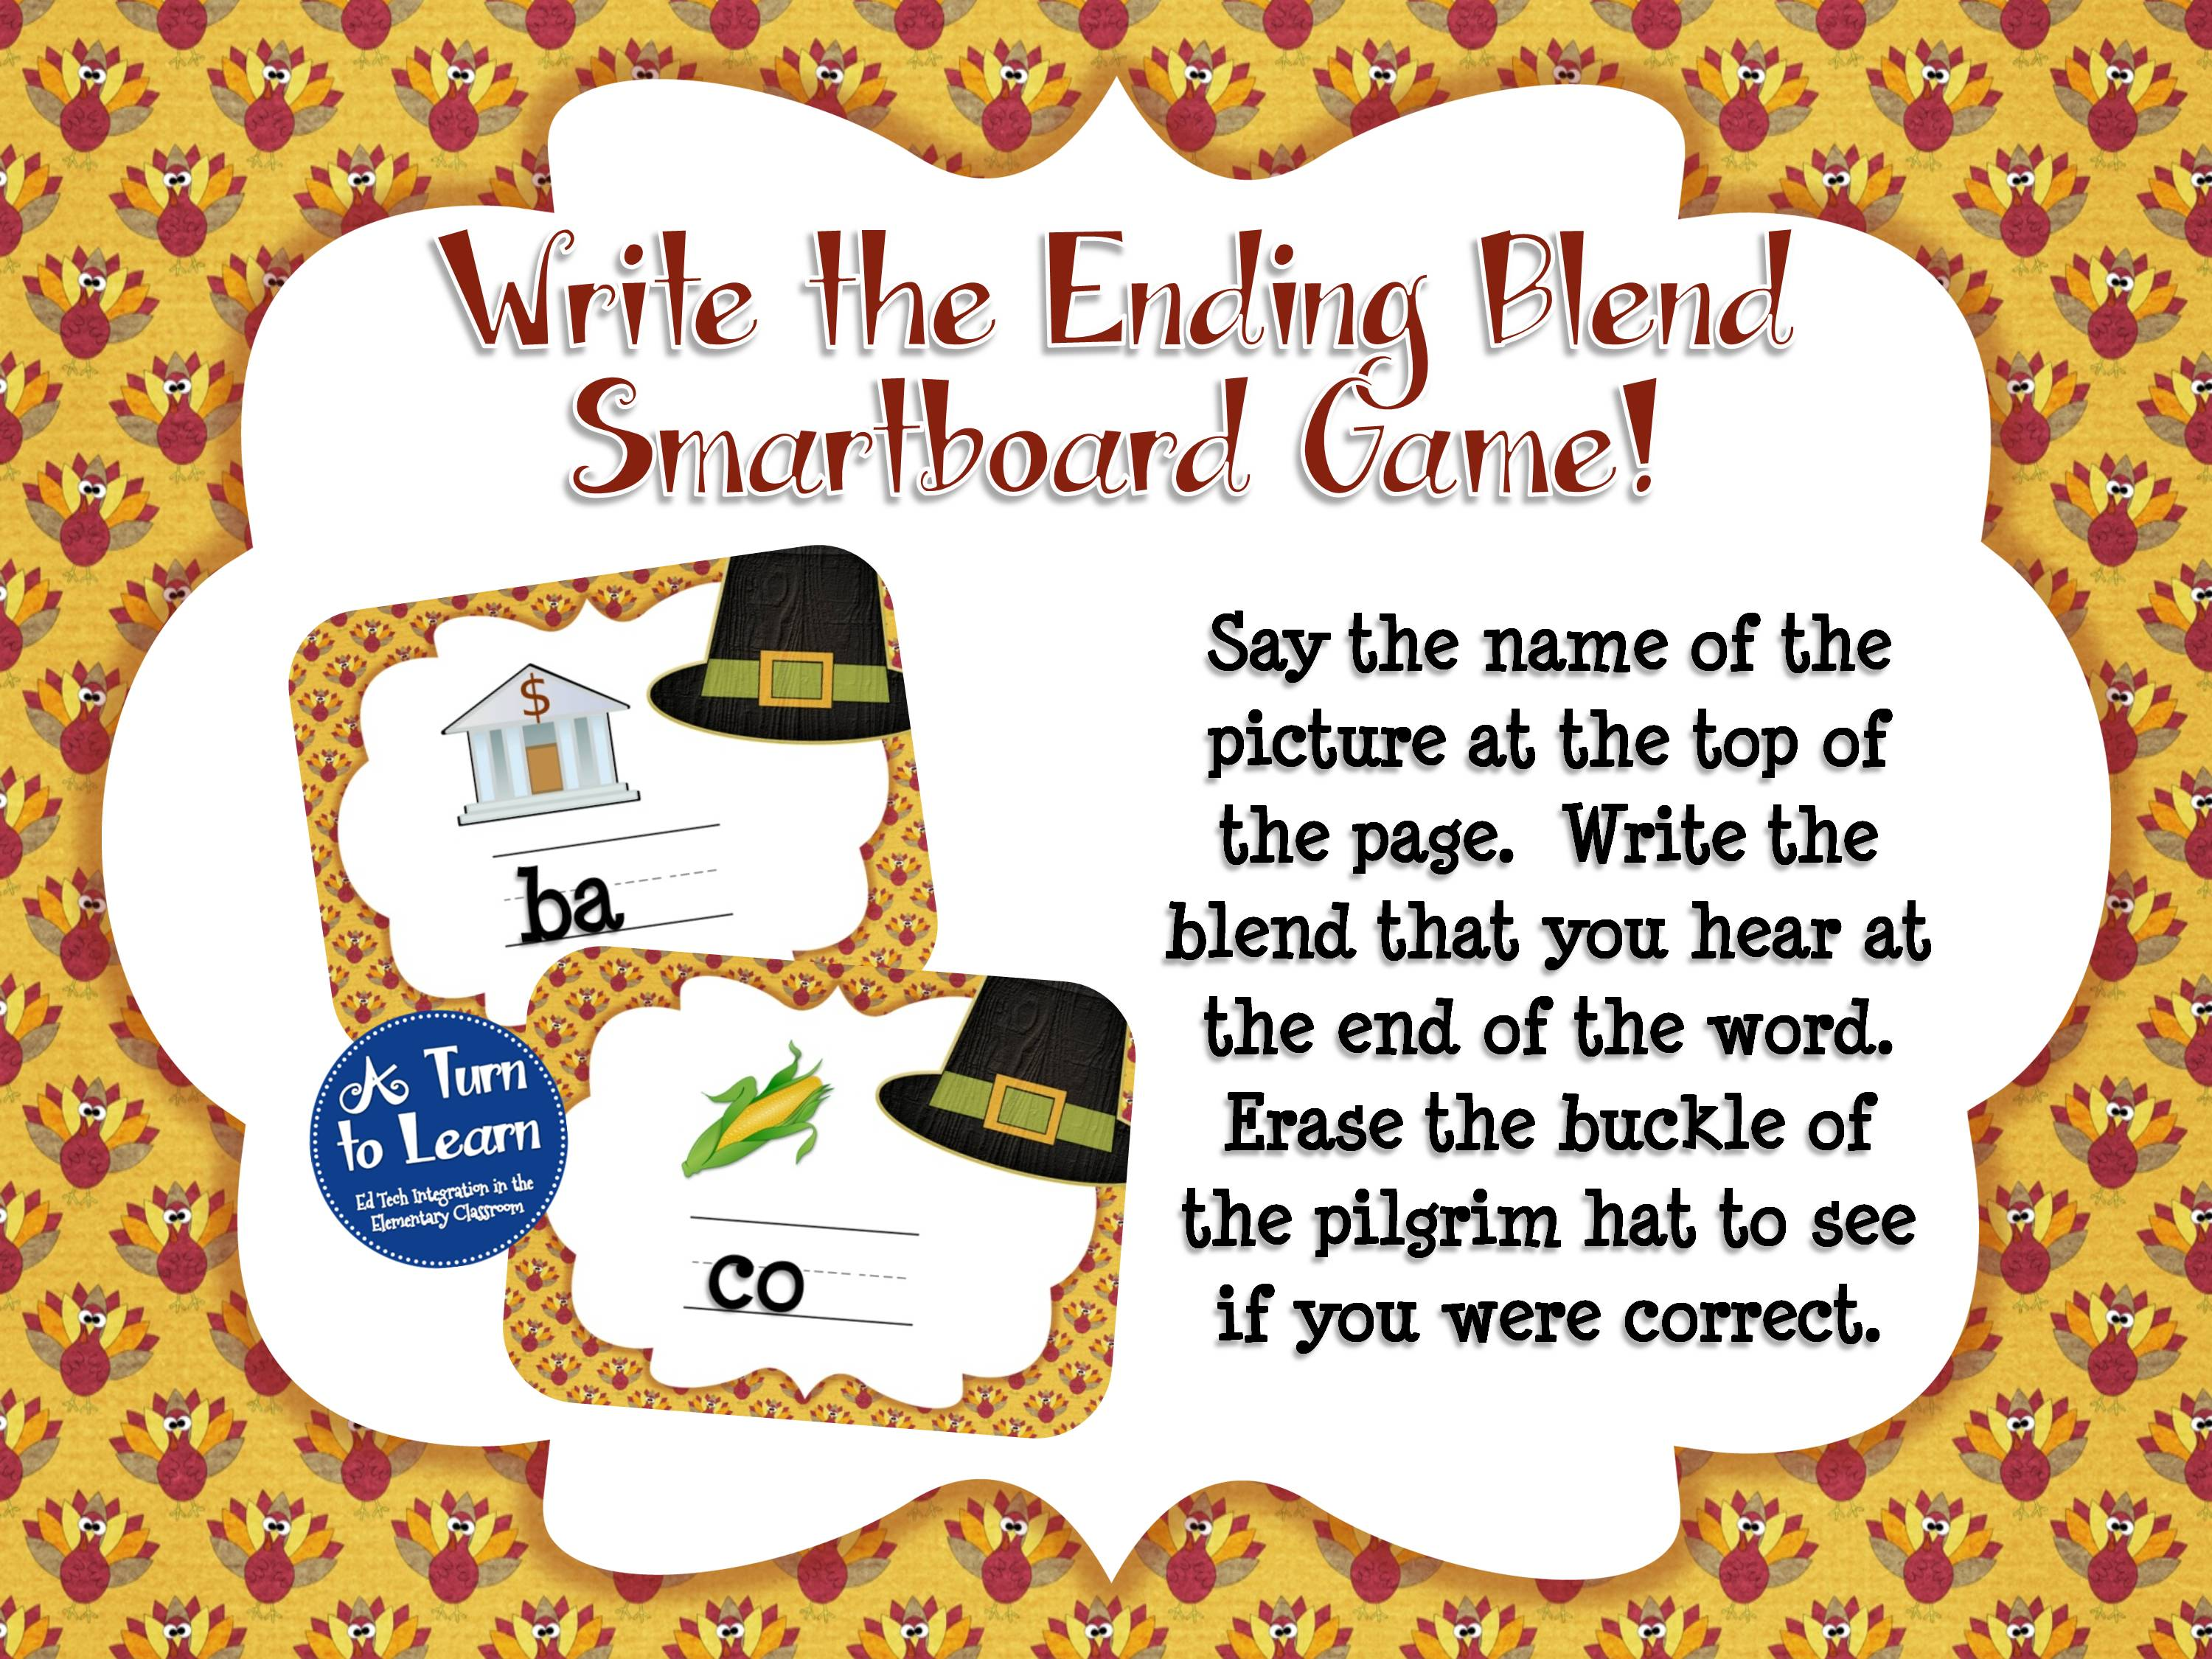 Thanksgiving themed smartboard game for ending blends